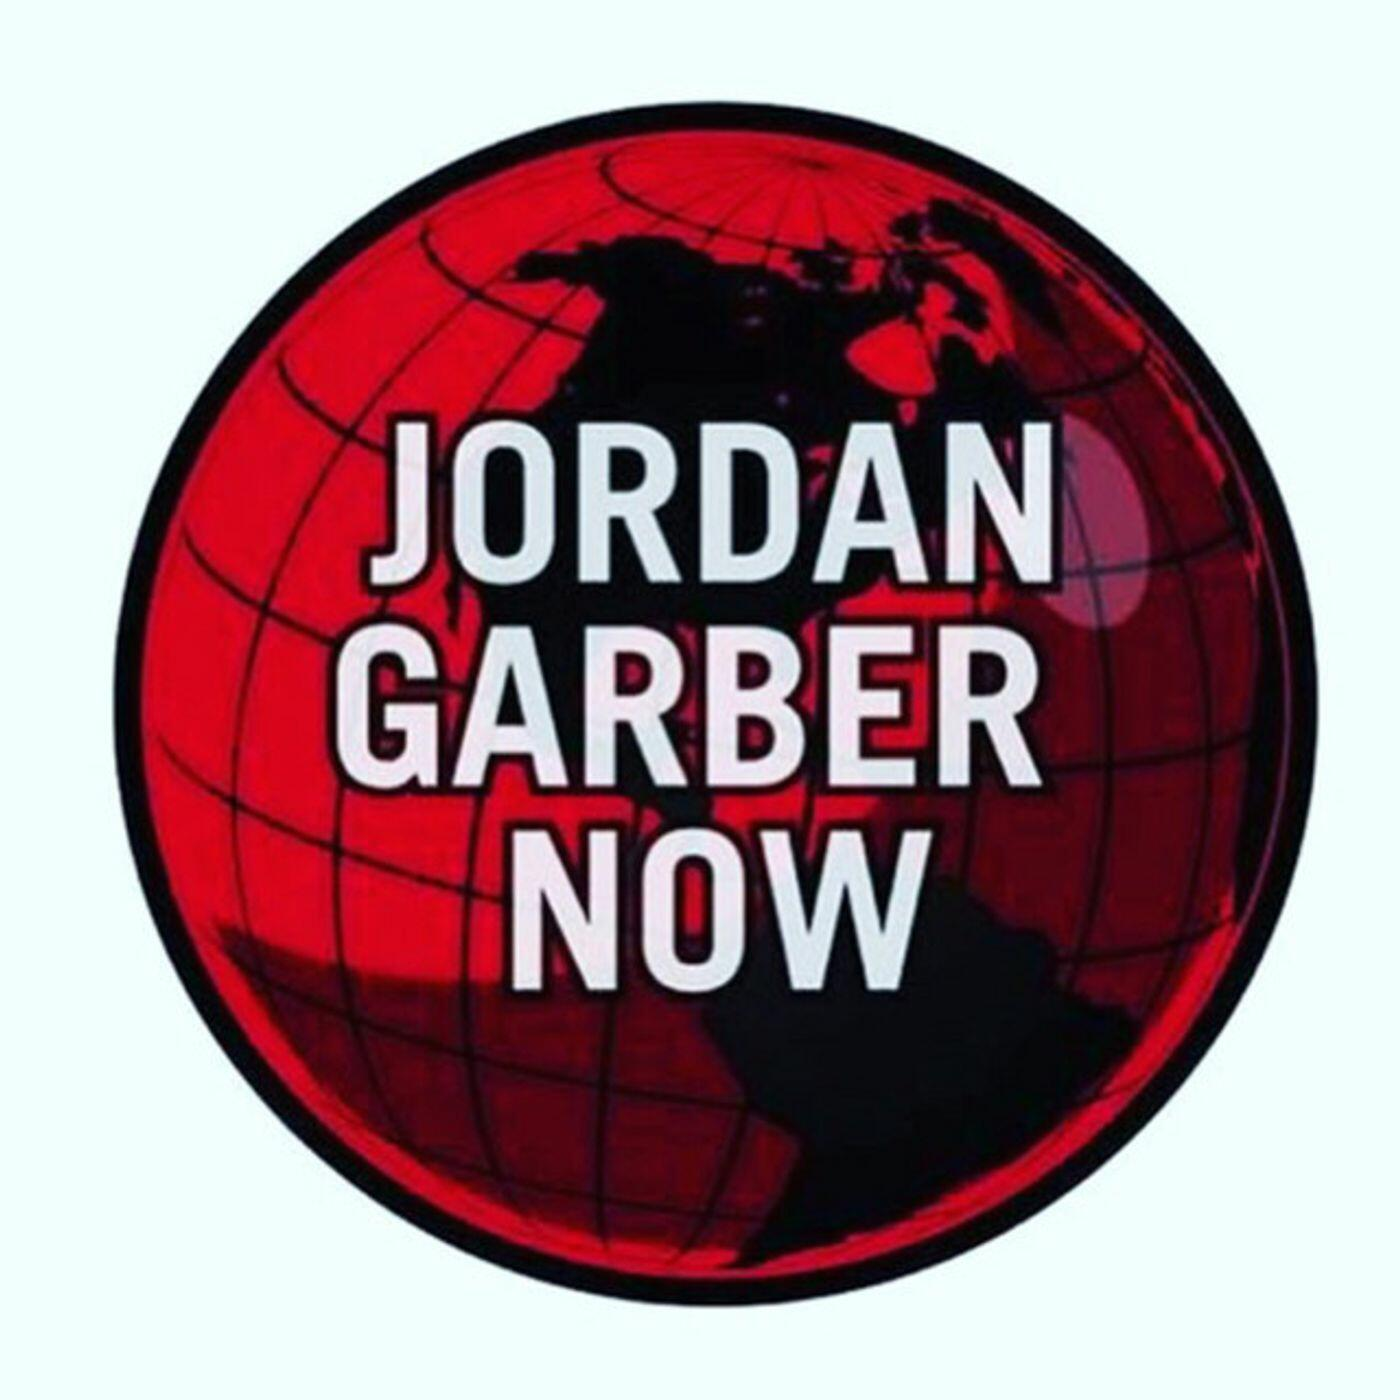 Listen to the Jordan Garber NOW Episode - Jordan Garber NOW 3 Hr Special on iHeartRadio | iHeartRadio